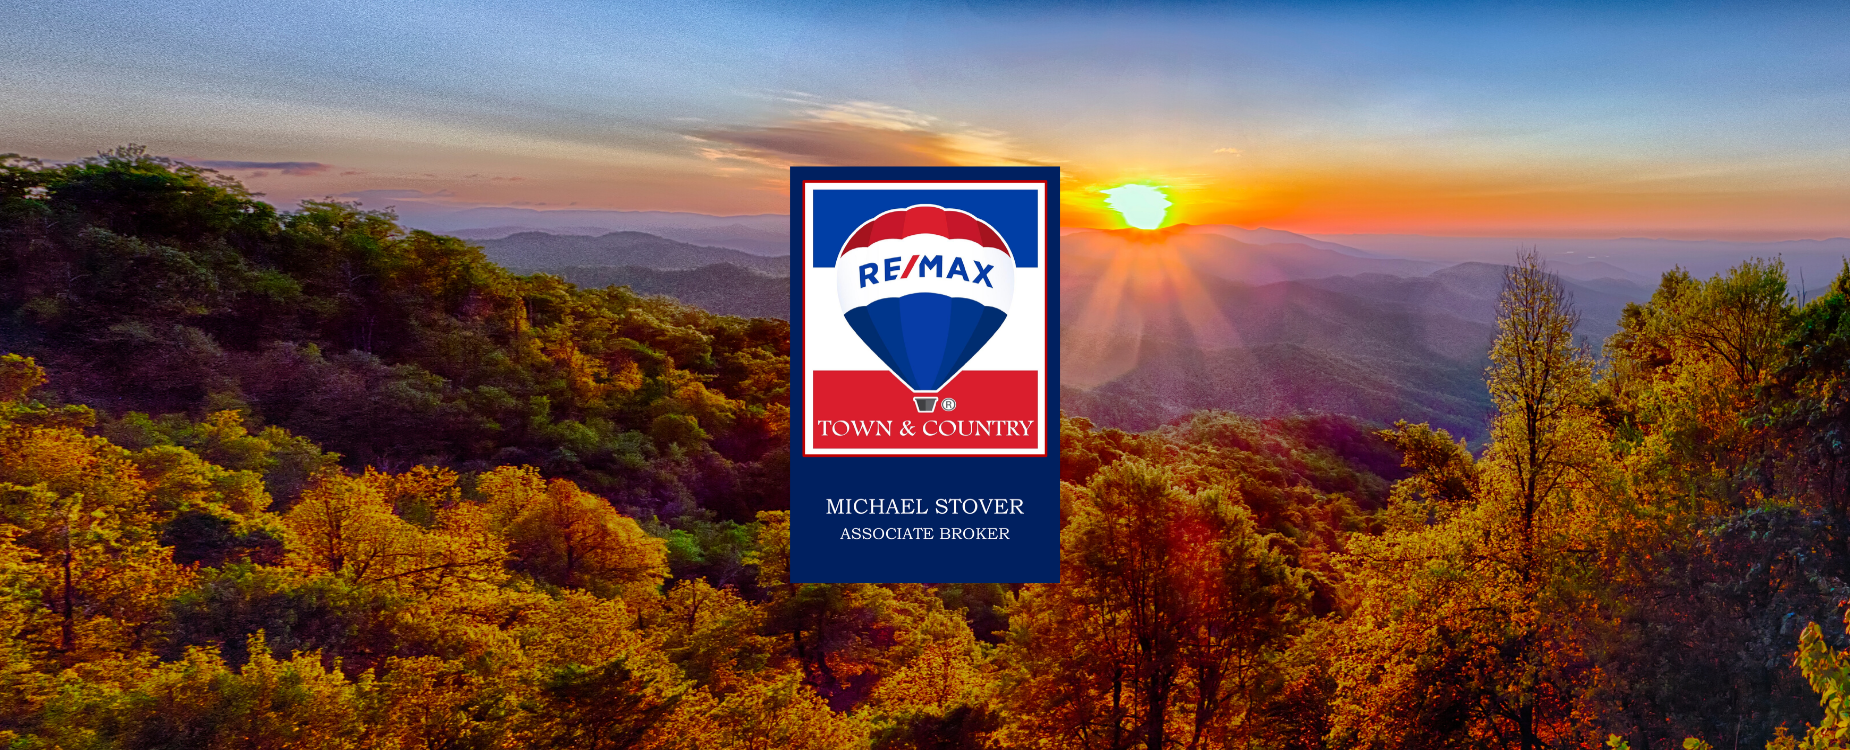 Mike Stover RE/MAX header 2